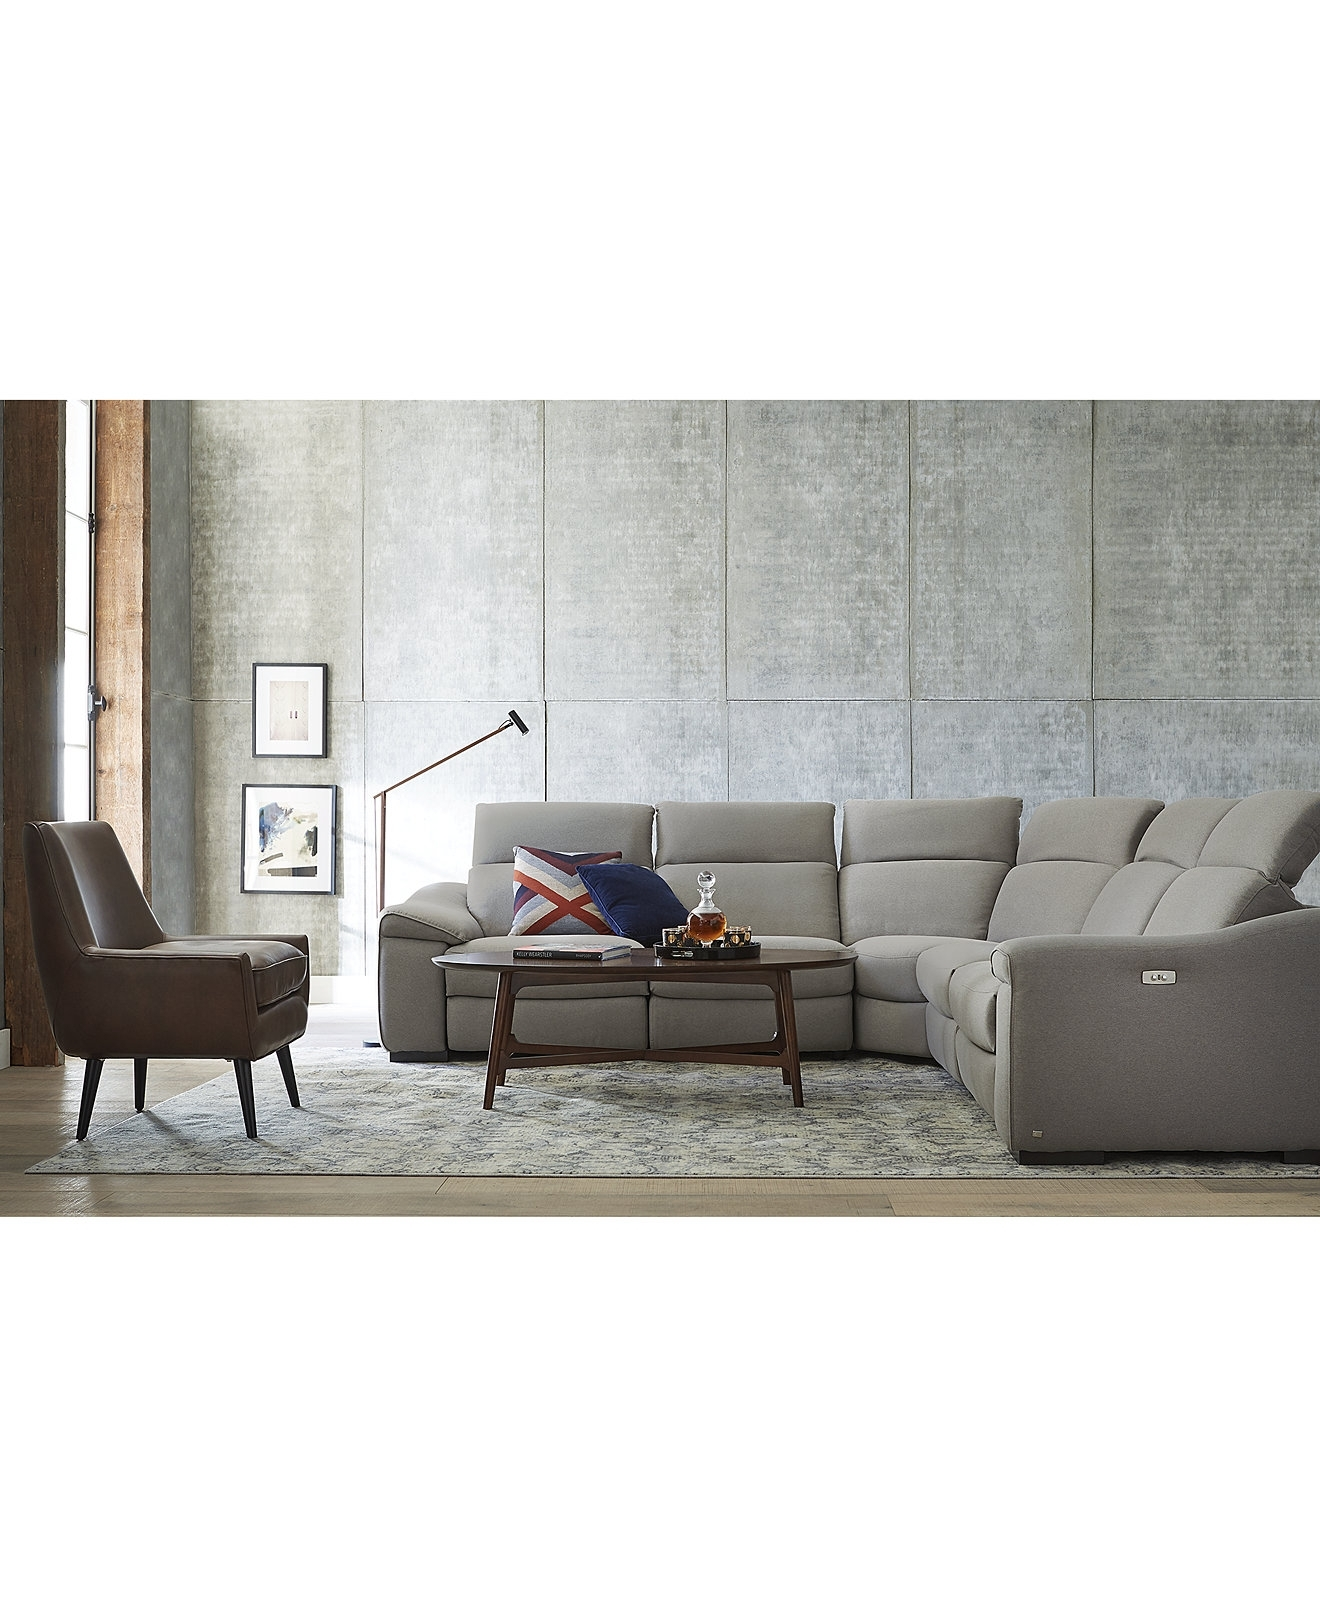 Sofas: Elegant Living Room Sofas Designmacys Sectional Sofa within Travis Cognac Leather 6 Piece Power Reclining Sectionals With Power Headrest & Usb (Image 21 of 30)